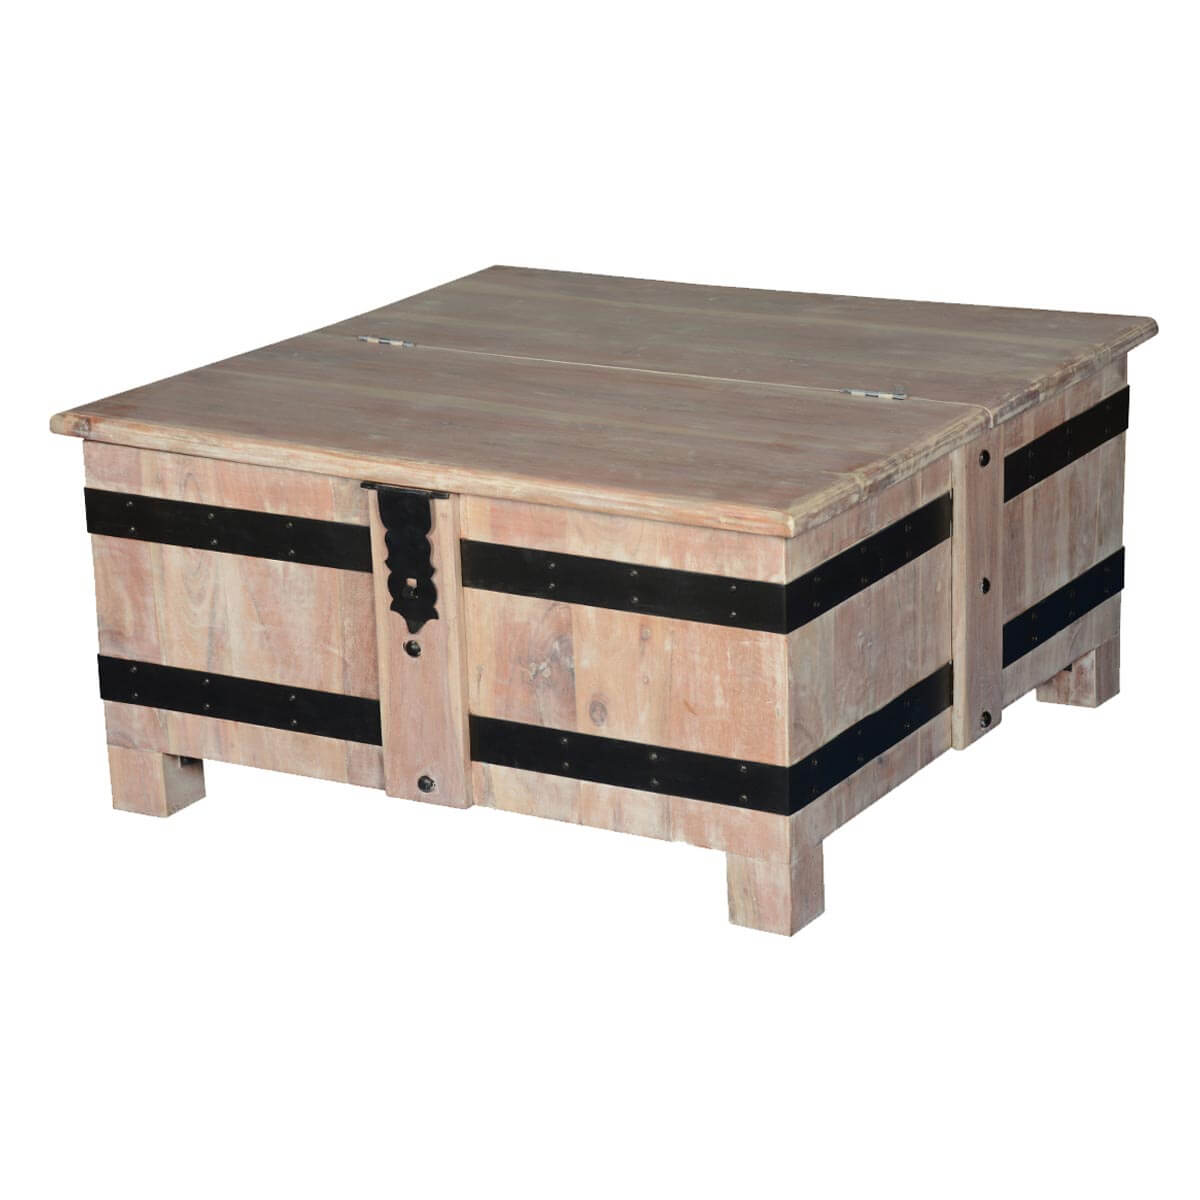 frosted gothic mango wood standing square accent table chest with drawer inch console tiffany lamps lighted base small black round outdoor daybed bunnings glass lamp tables cool